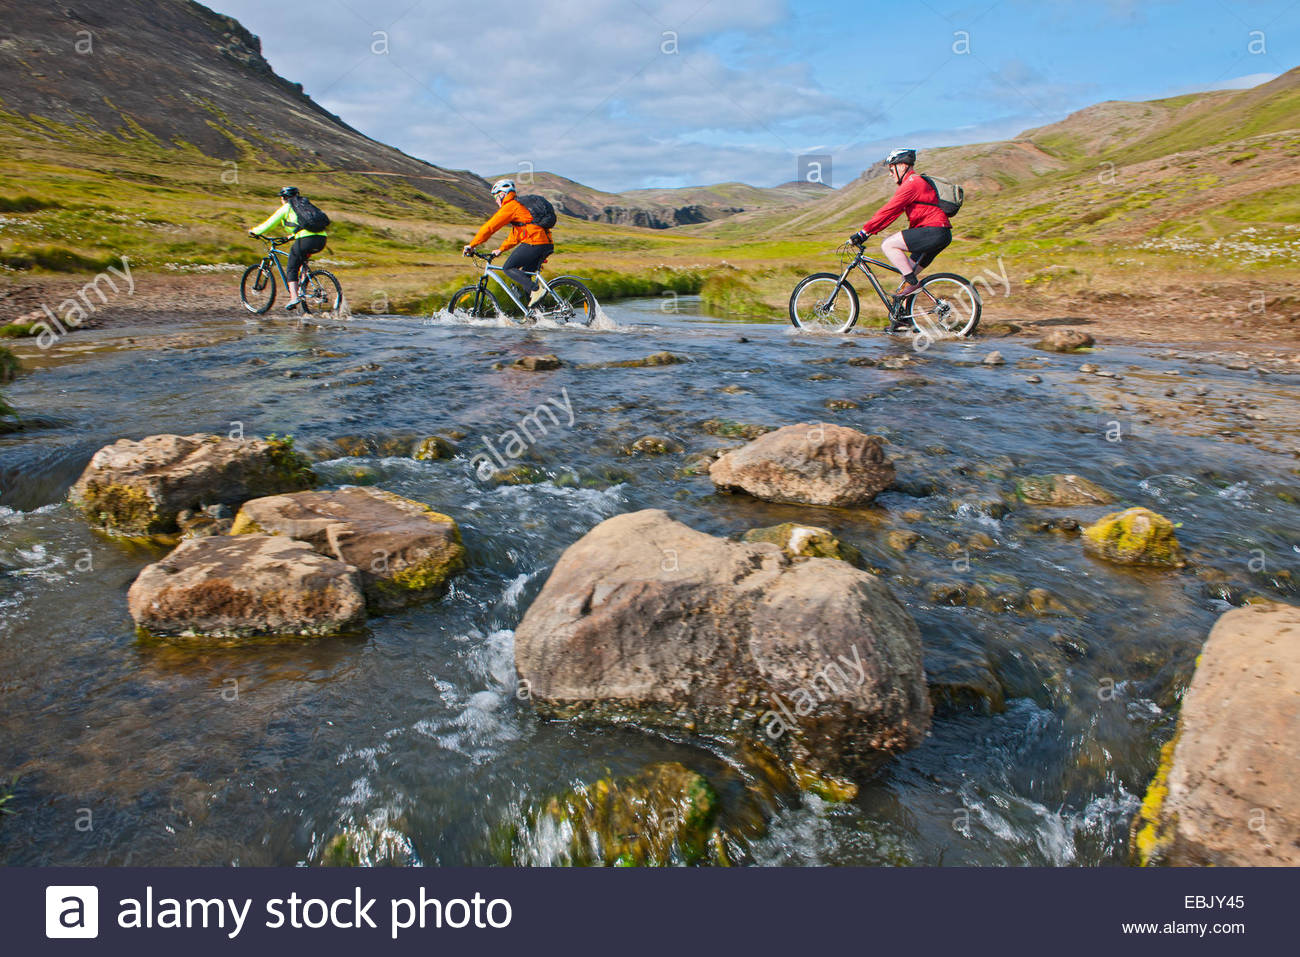 Mountain bikers cycling through hot river, Reykjadalur valley, South West Iceland - Stock Image